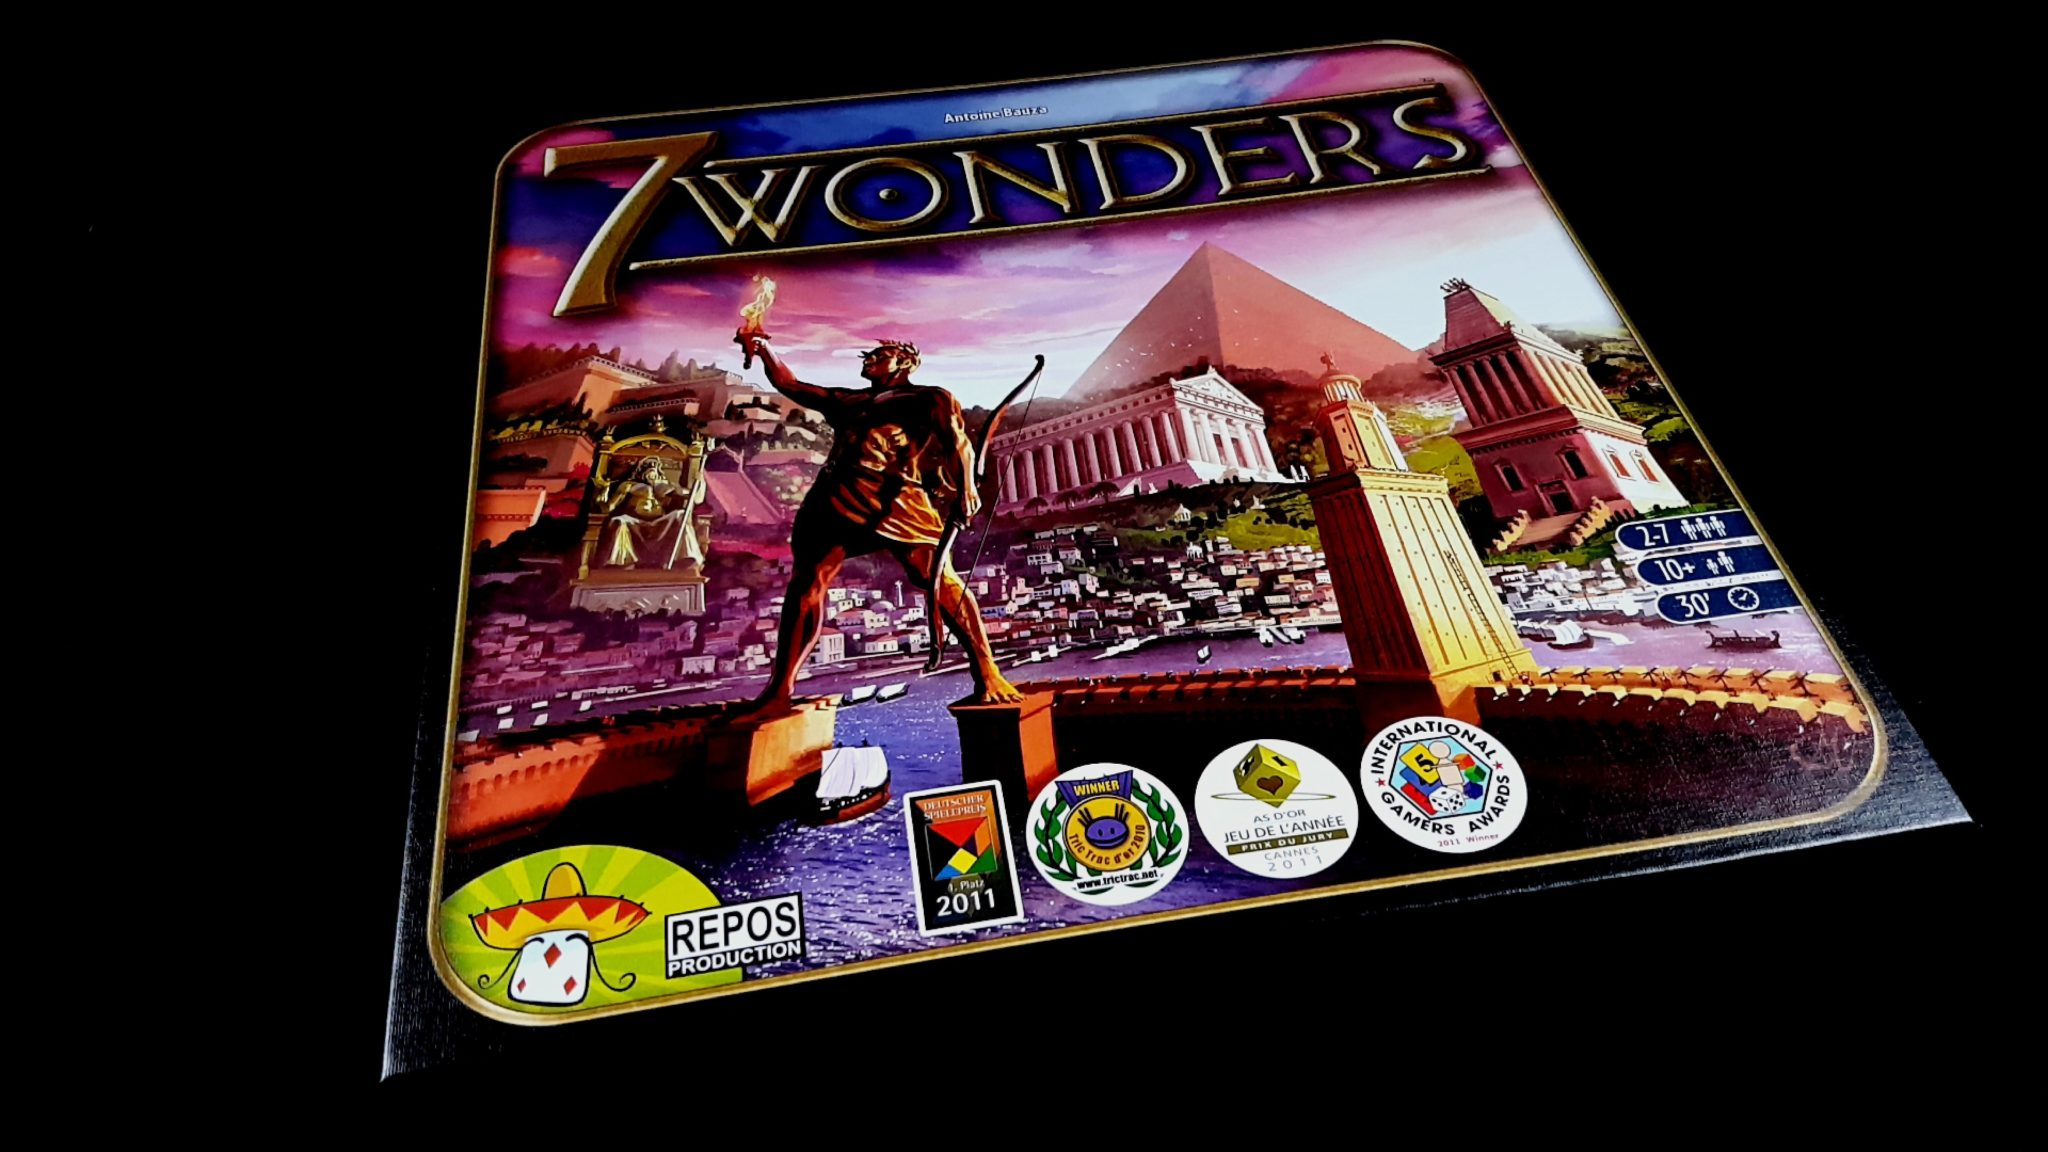 7 Wonders (2010) – Meeple Like Us image